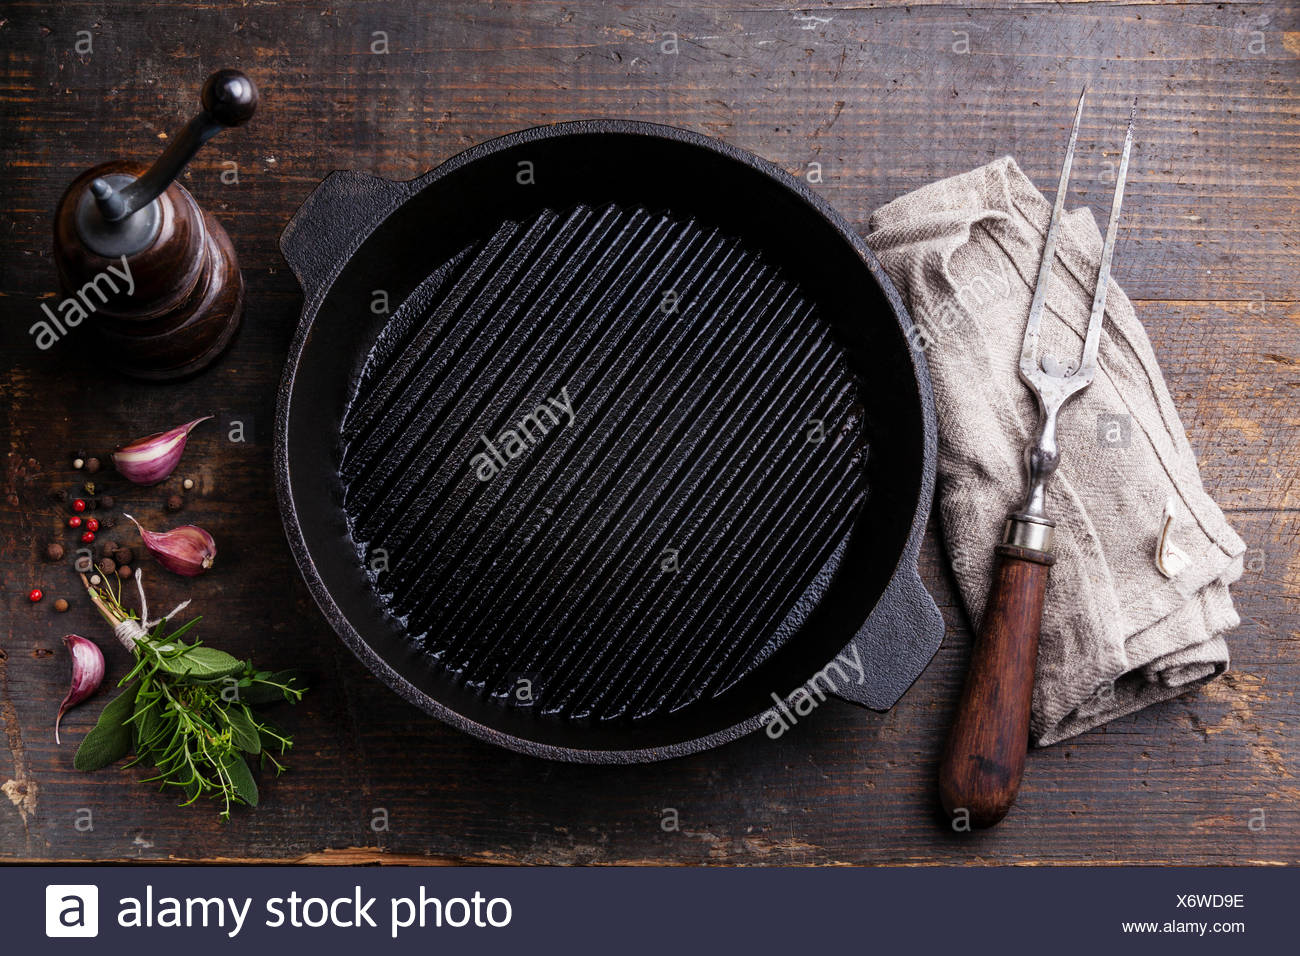 Black iron empty grill pan and meat fork on wooden texture background - Stock Image